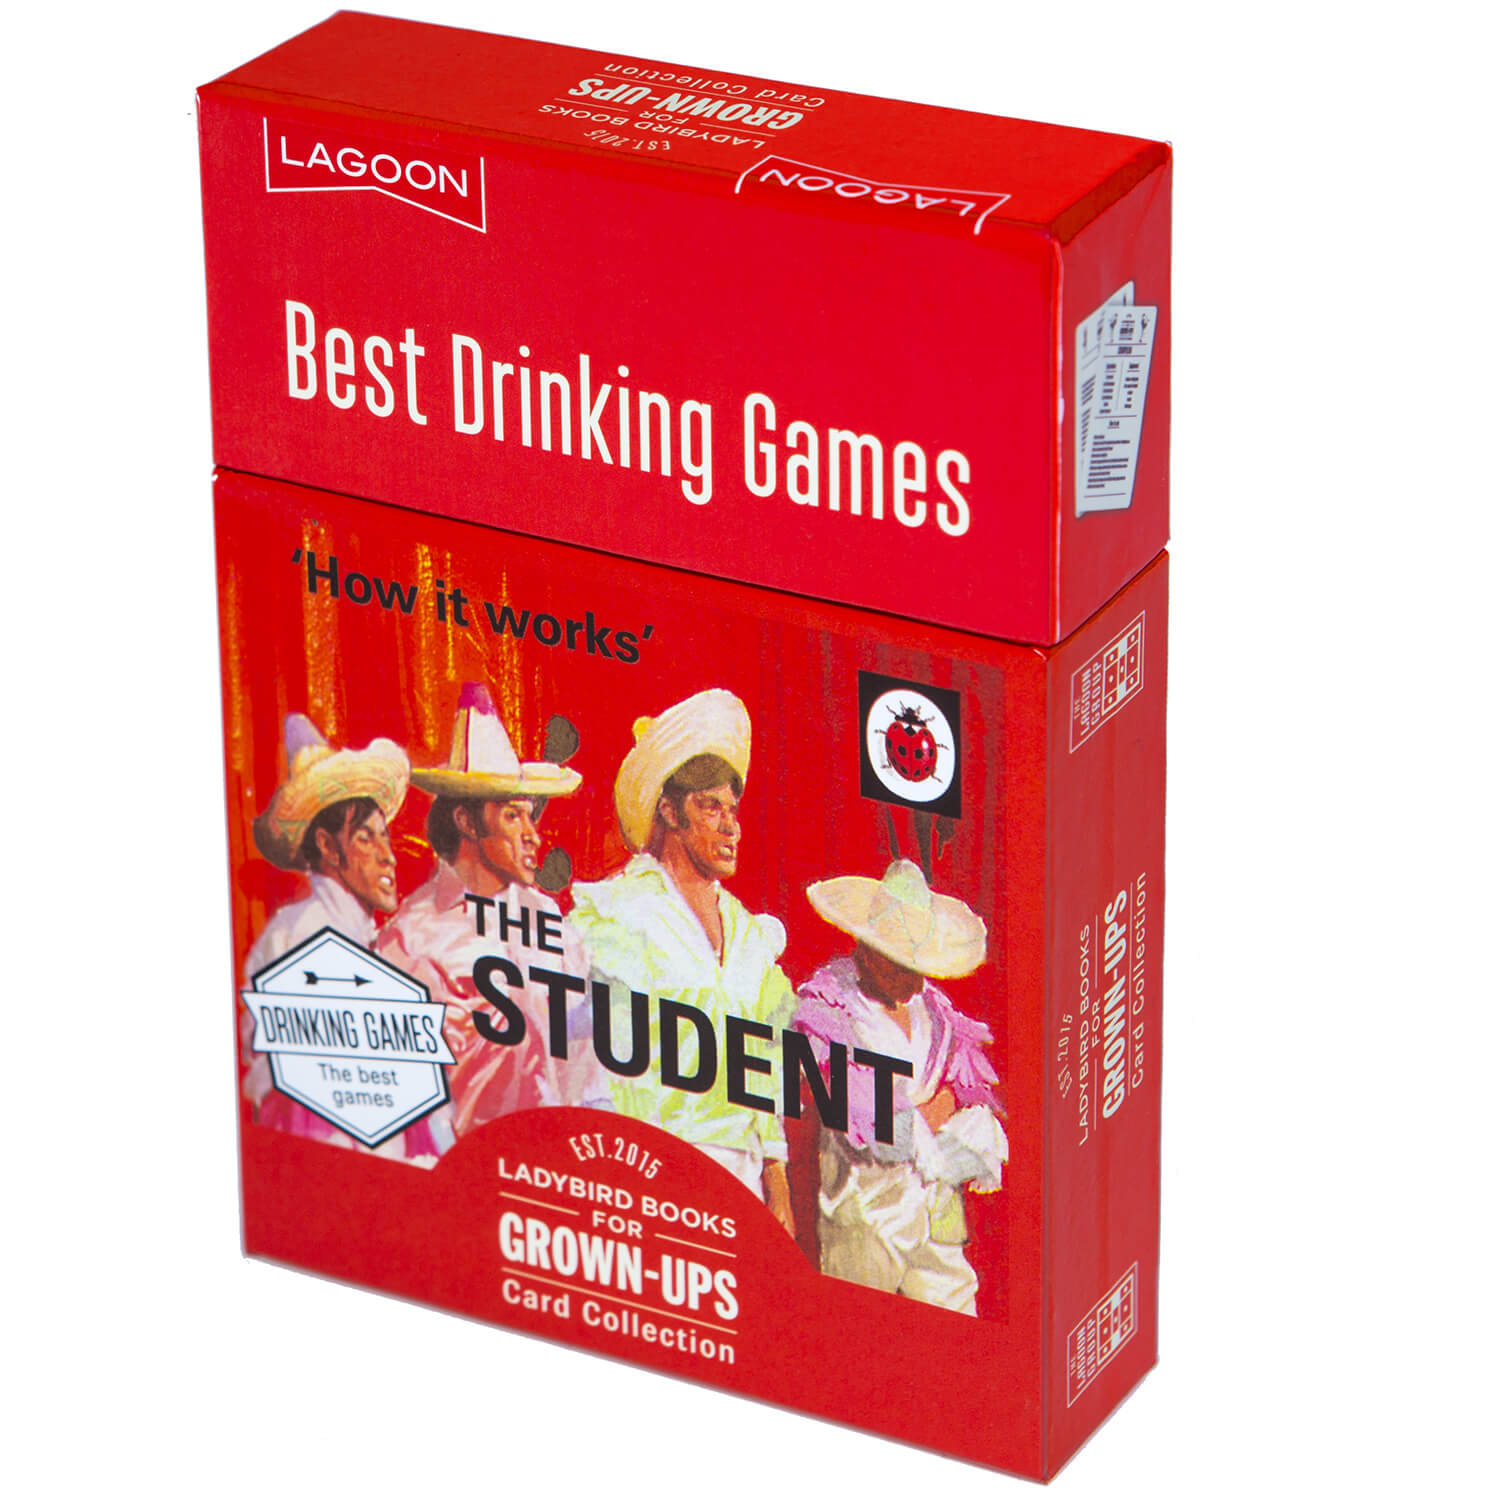 Ladybird Books for Grown-Ups Best Drinking Games